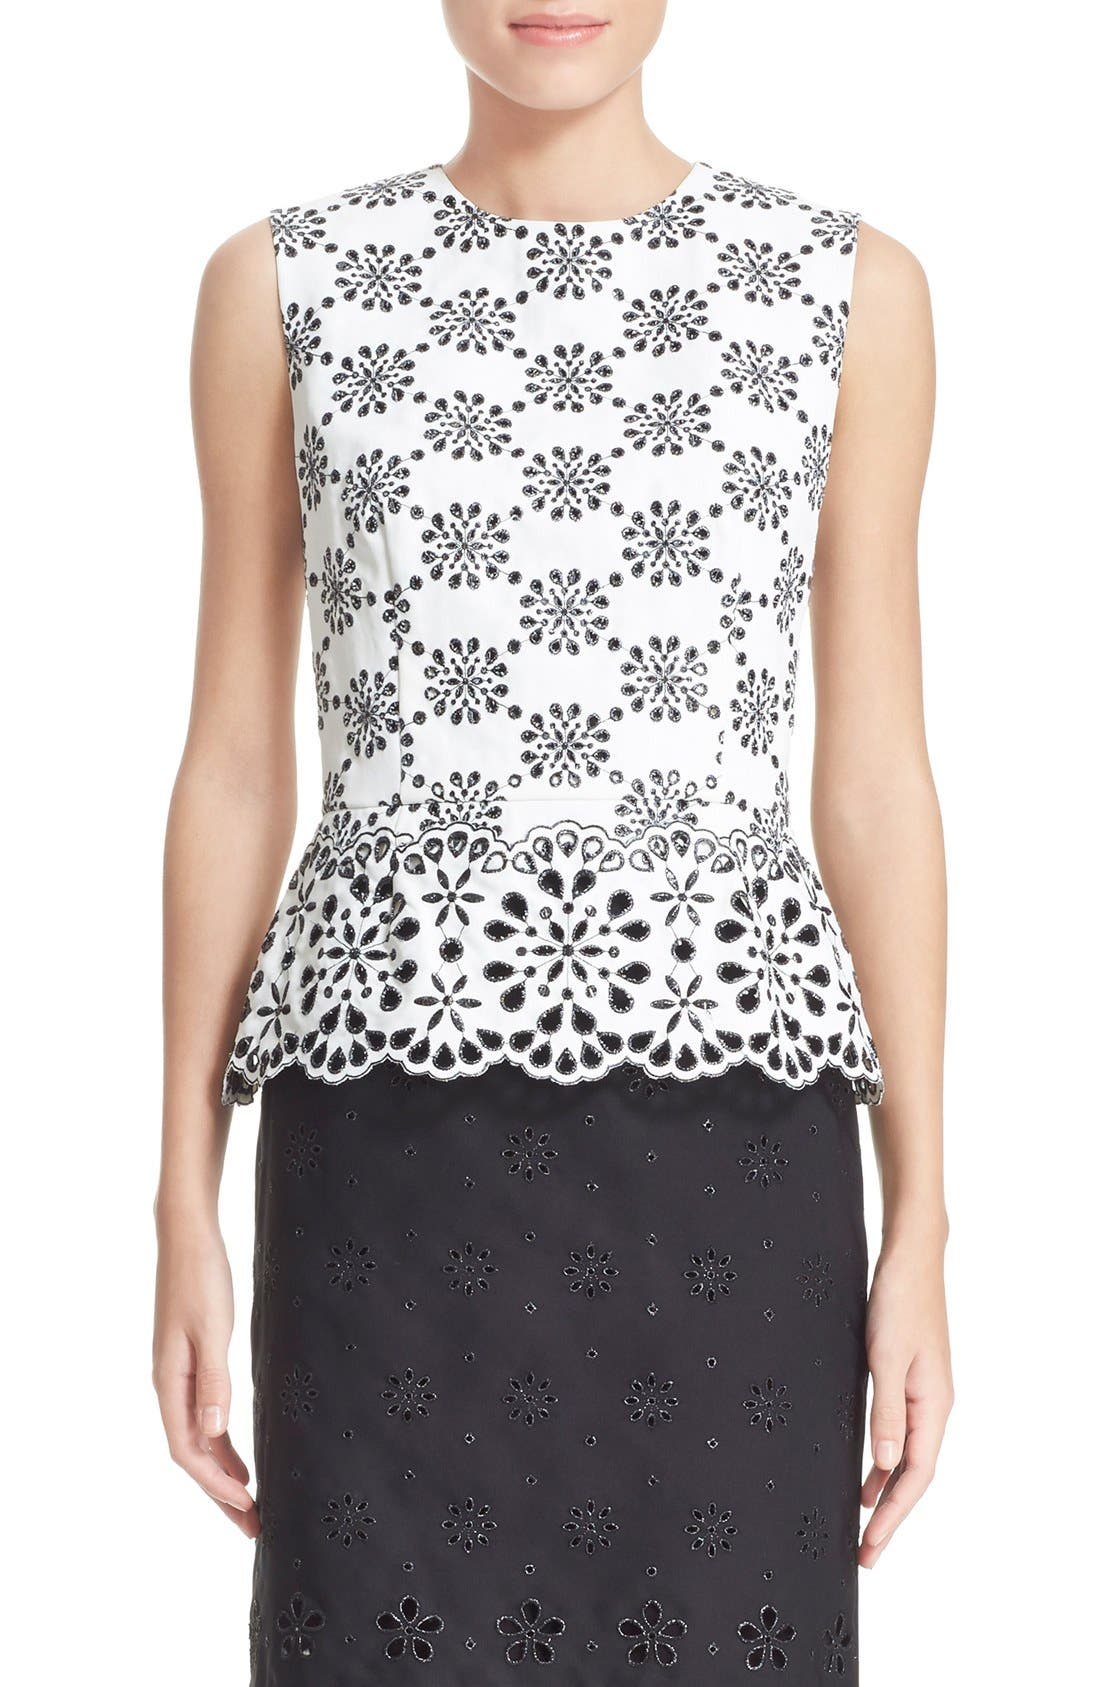 Alternate Image 1 Selected - MARC JACOBS Lace Peplum Blouse